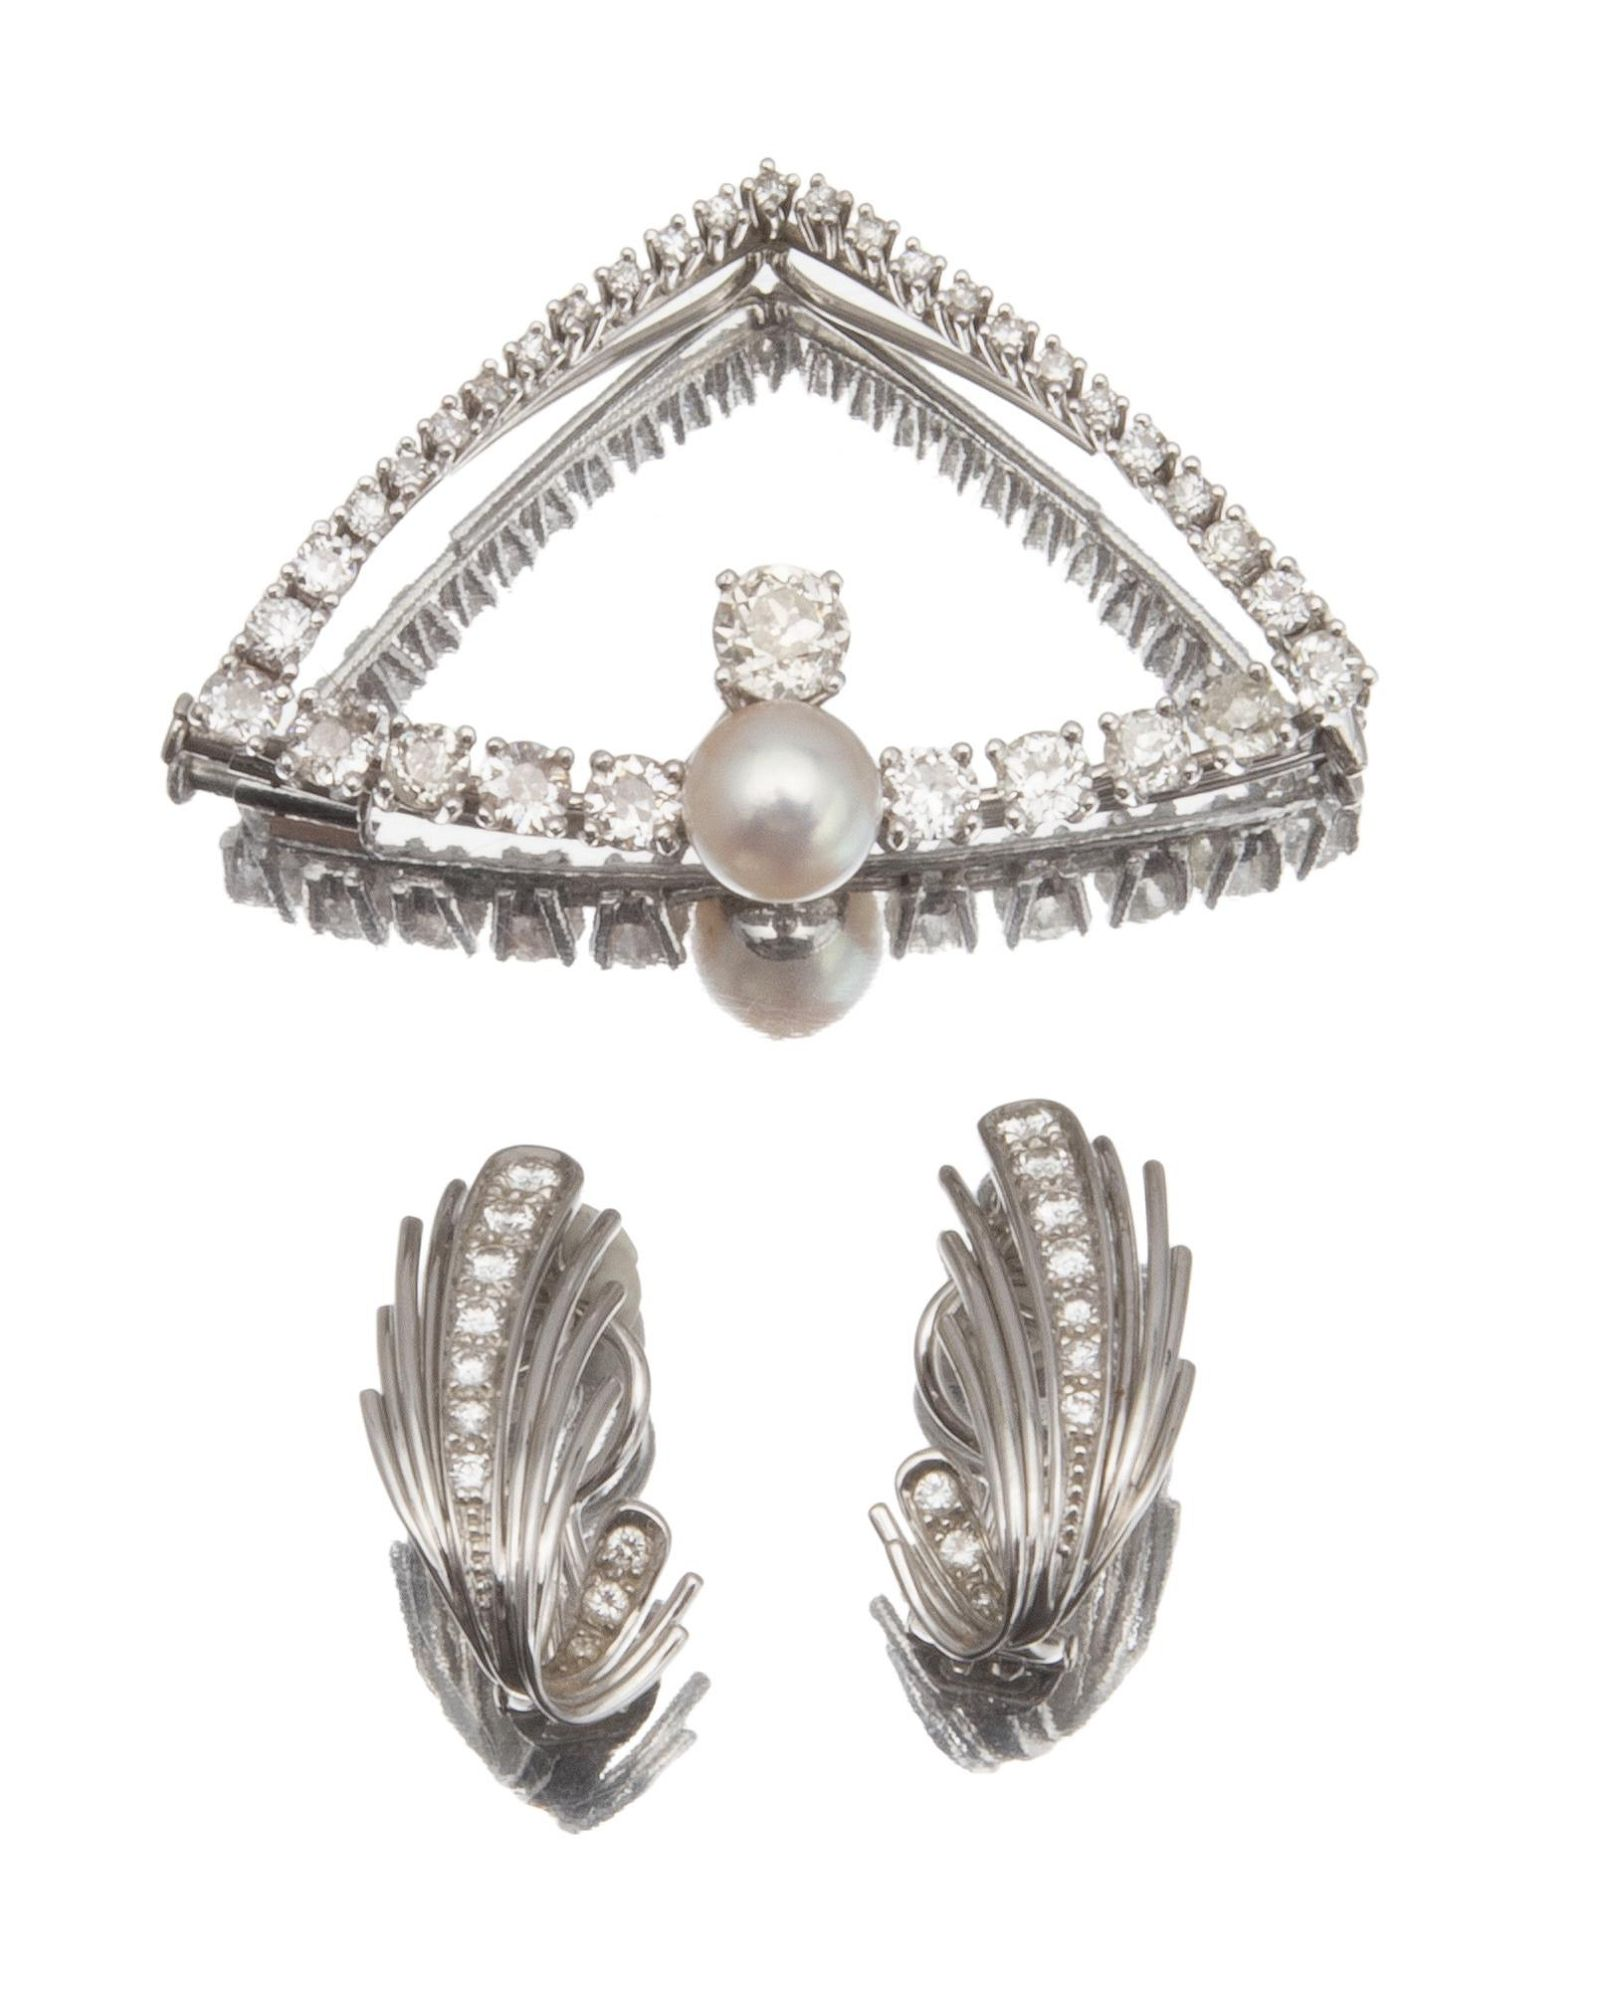 A group of diamond jewelry items